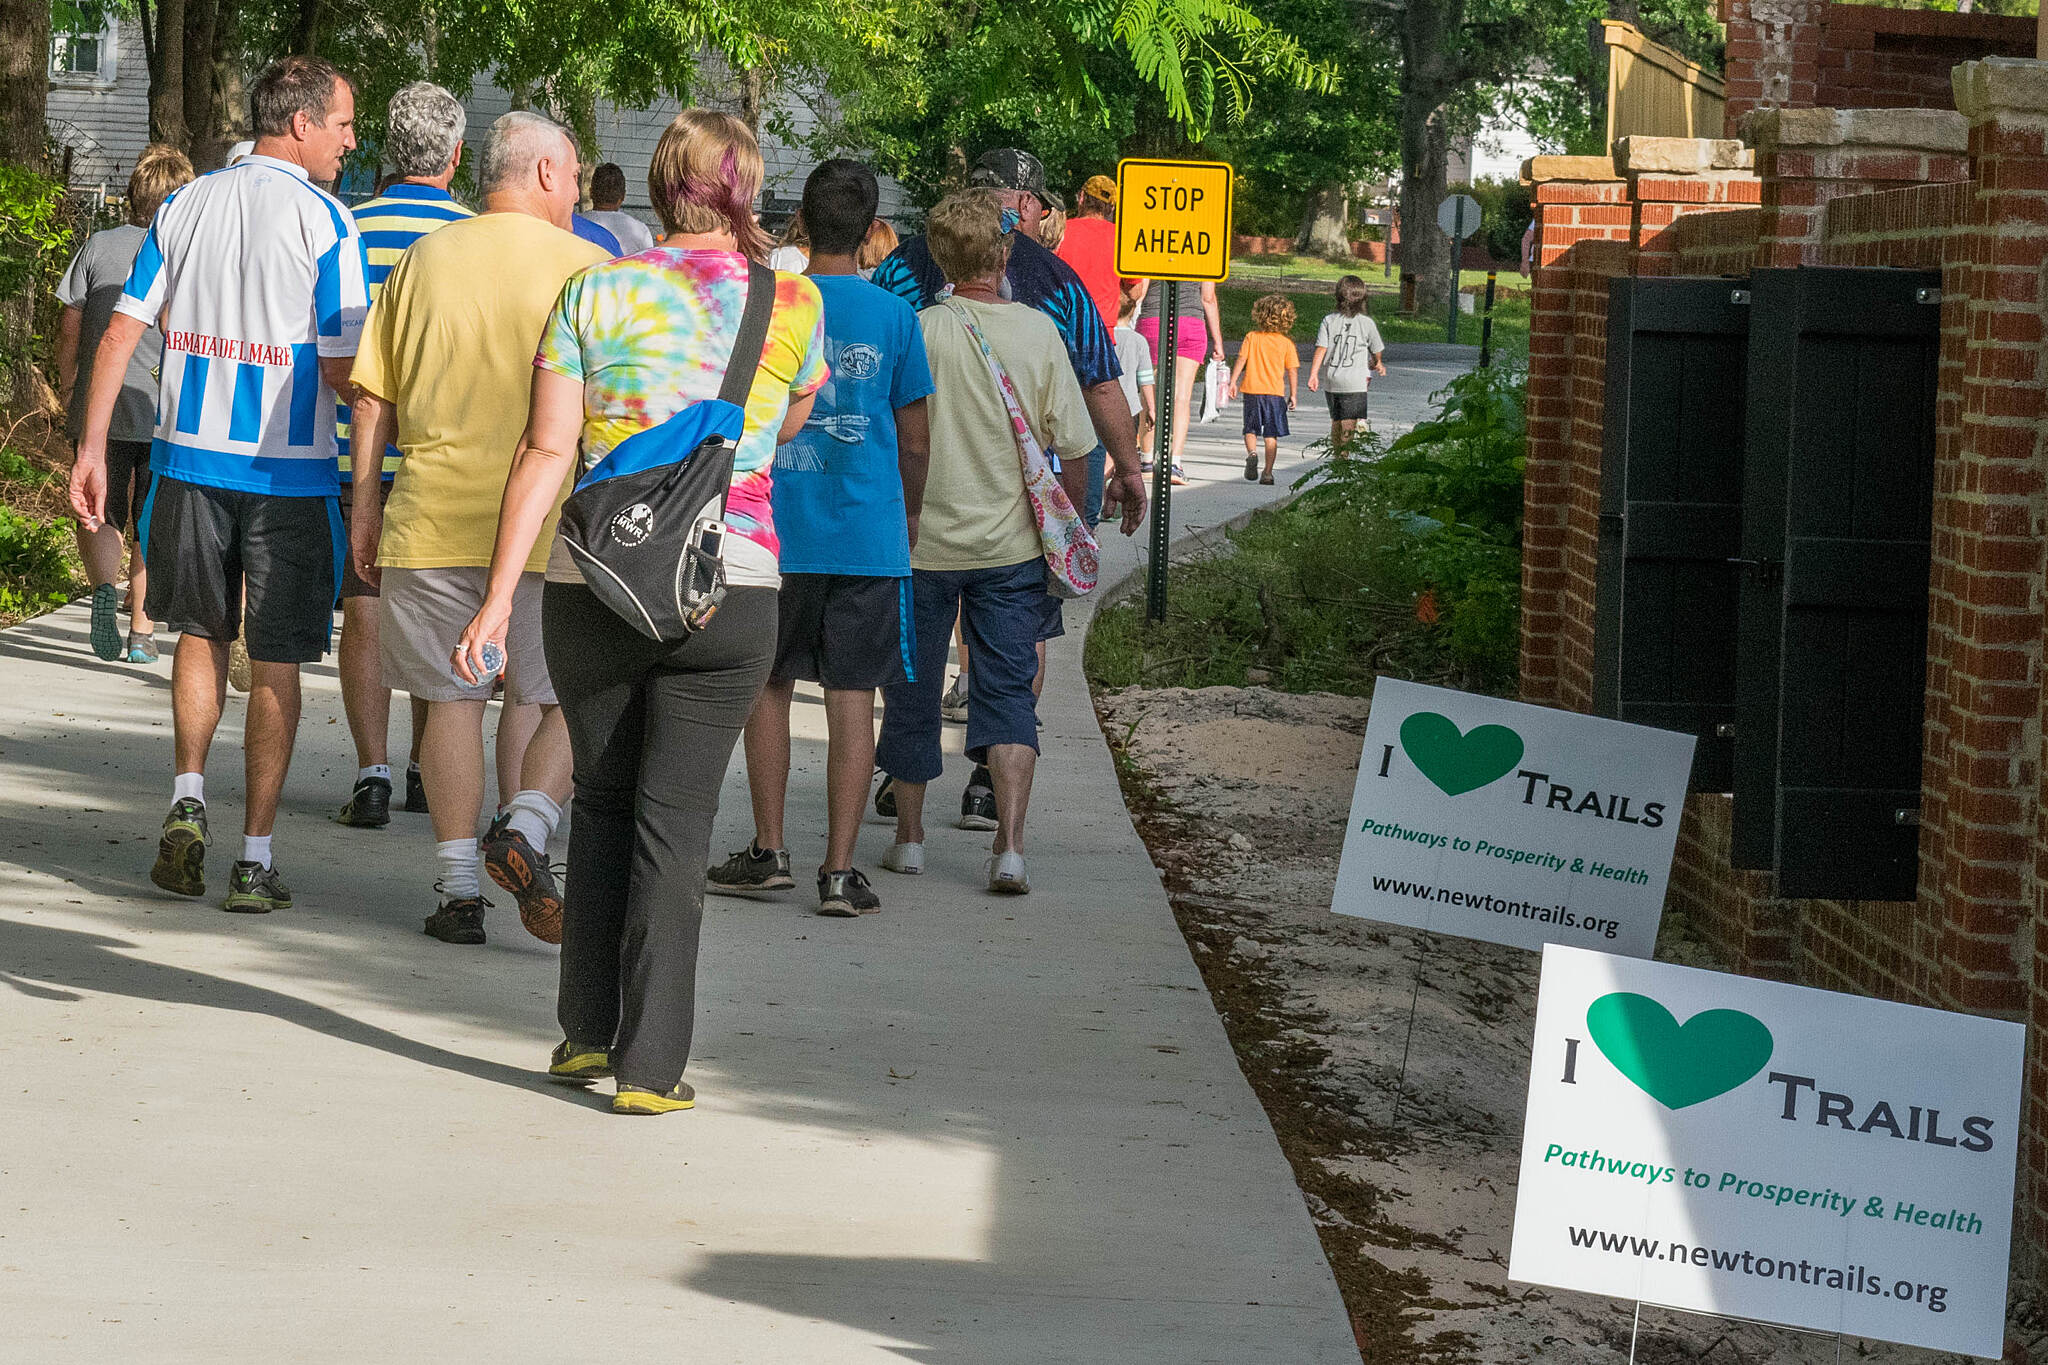 Cricket Frog Trail Every Body Walk Newton County The trail's official ribbon cutting in May capped the 2017 walk series sponsored by Piedmont-Newton Hospital.